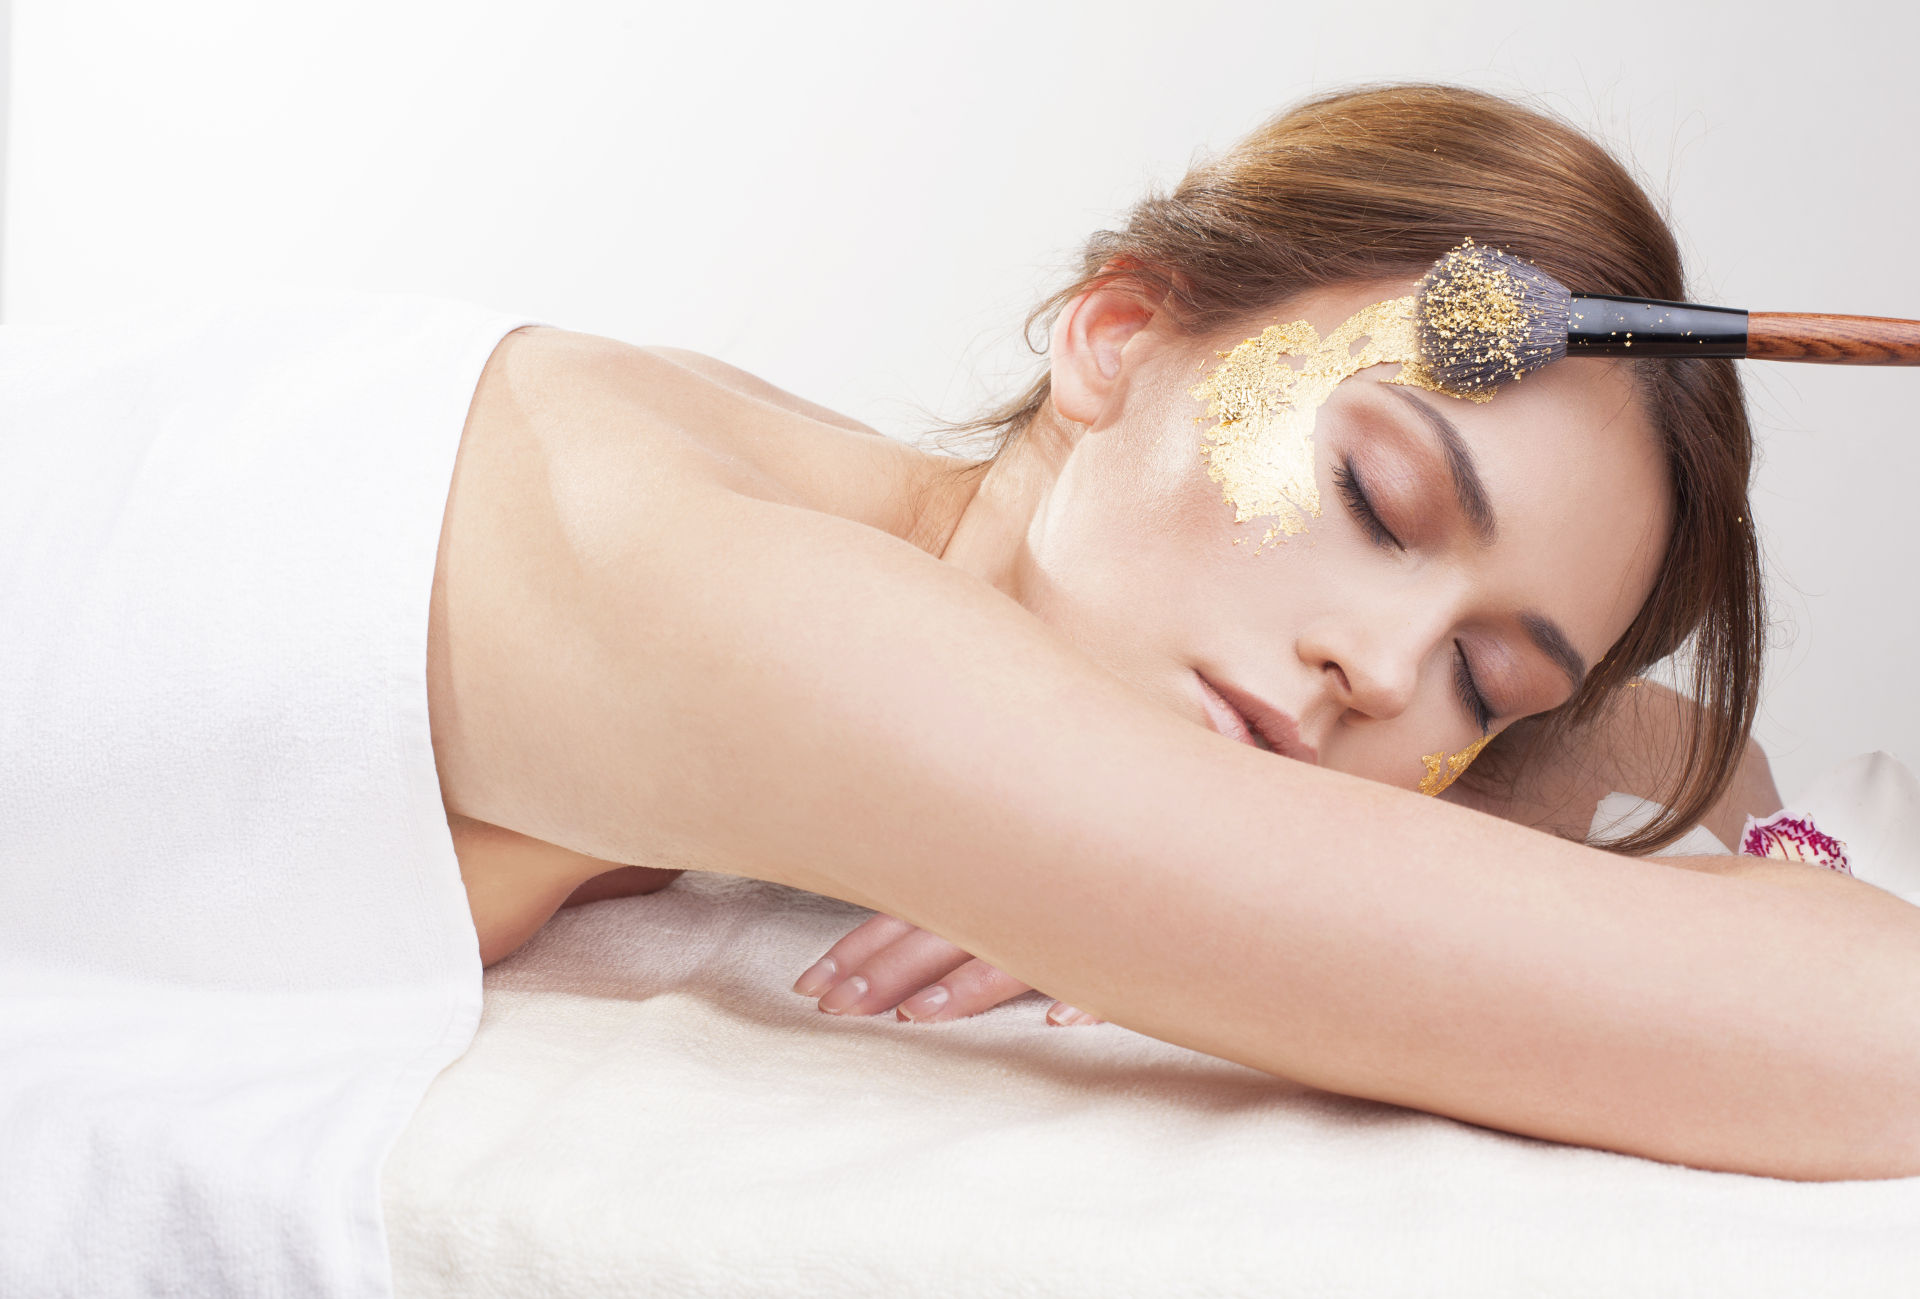 Woman Relaxing 24K Gold Leaf Cosmetics